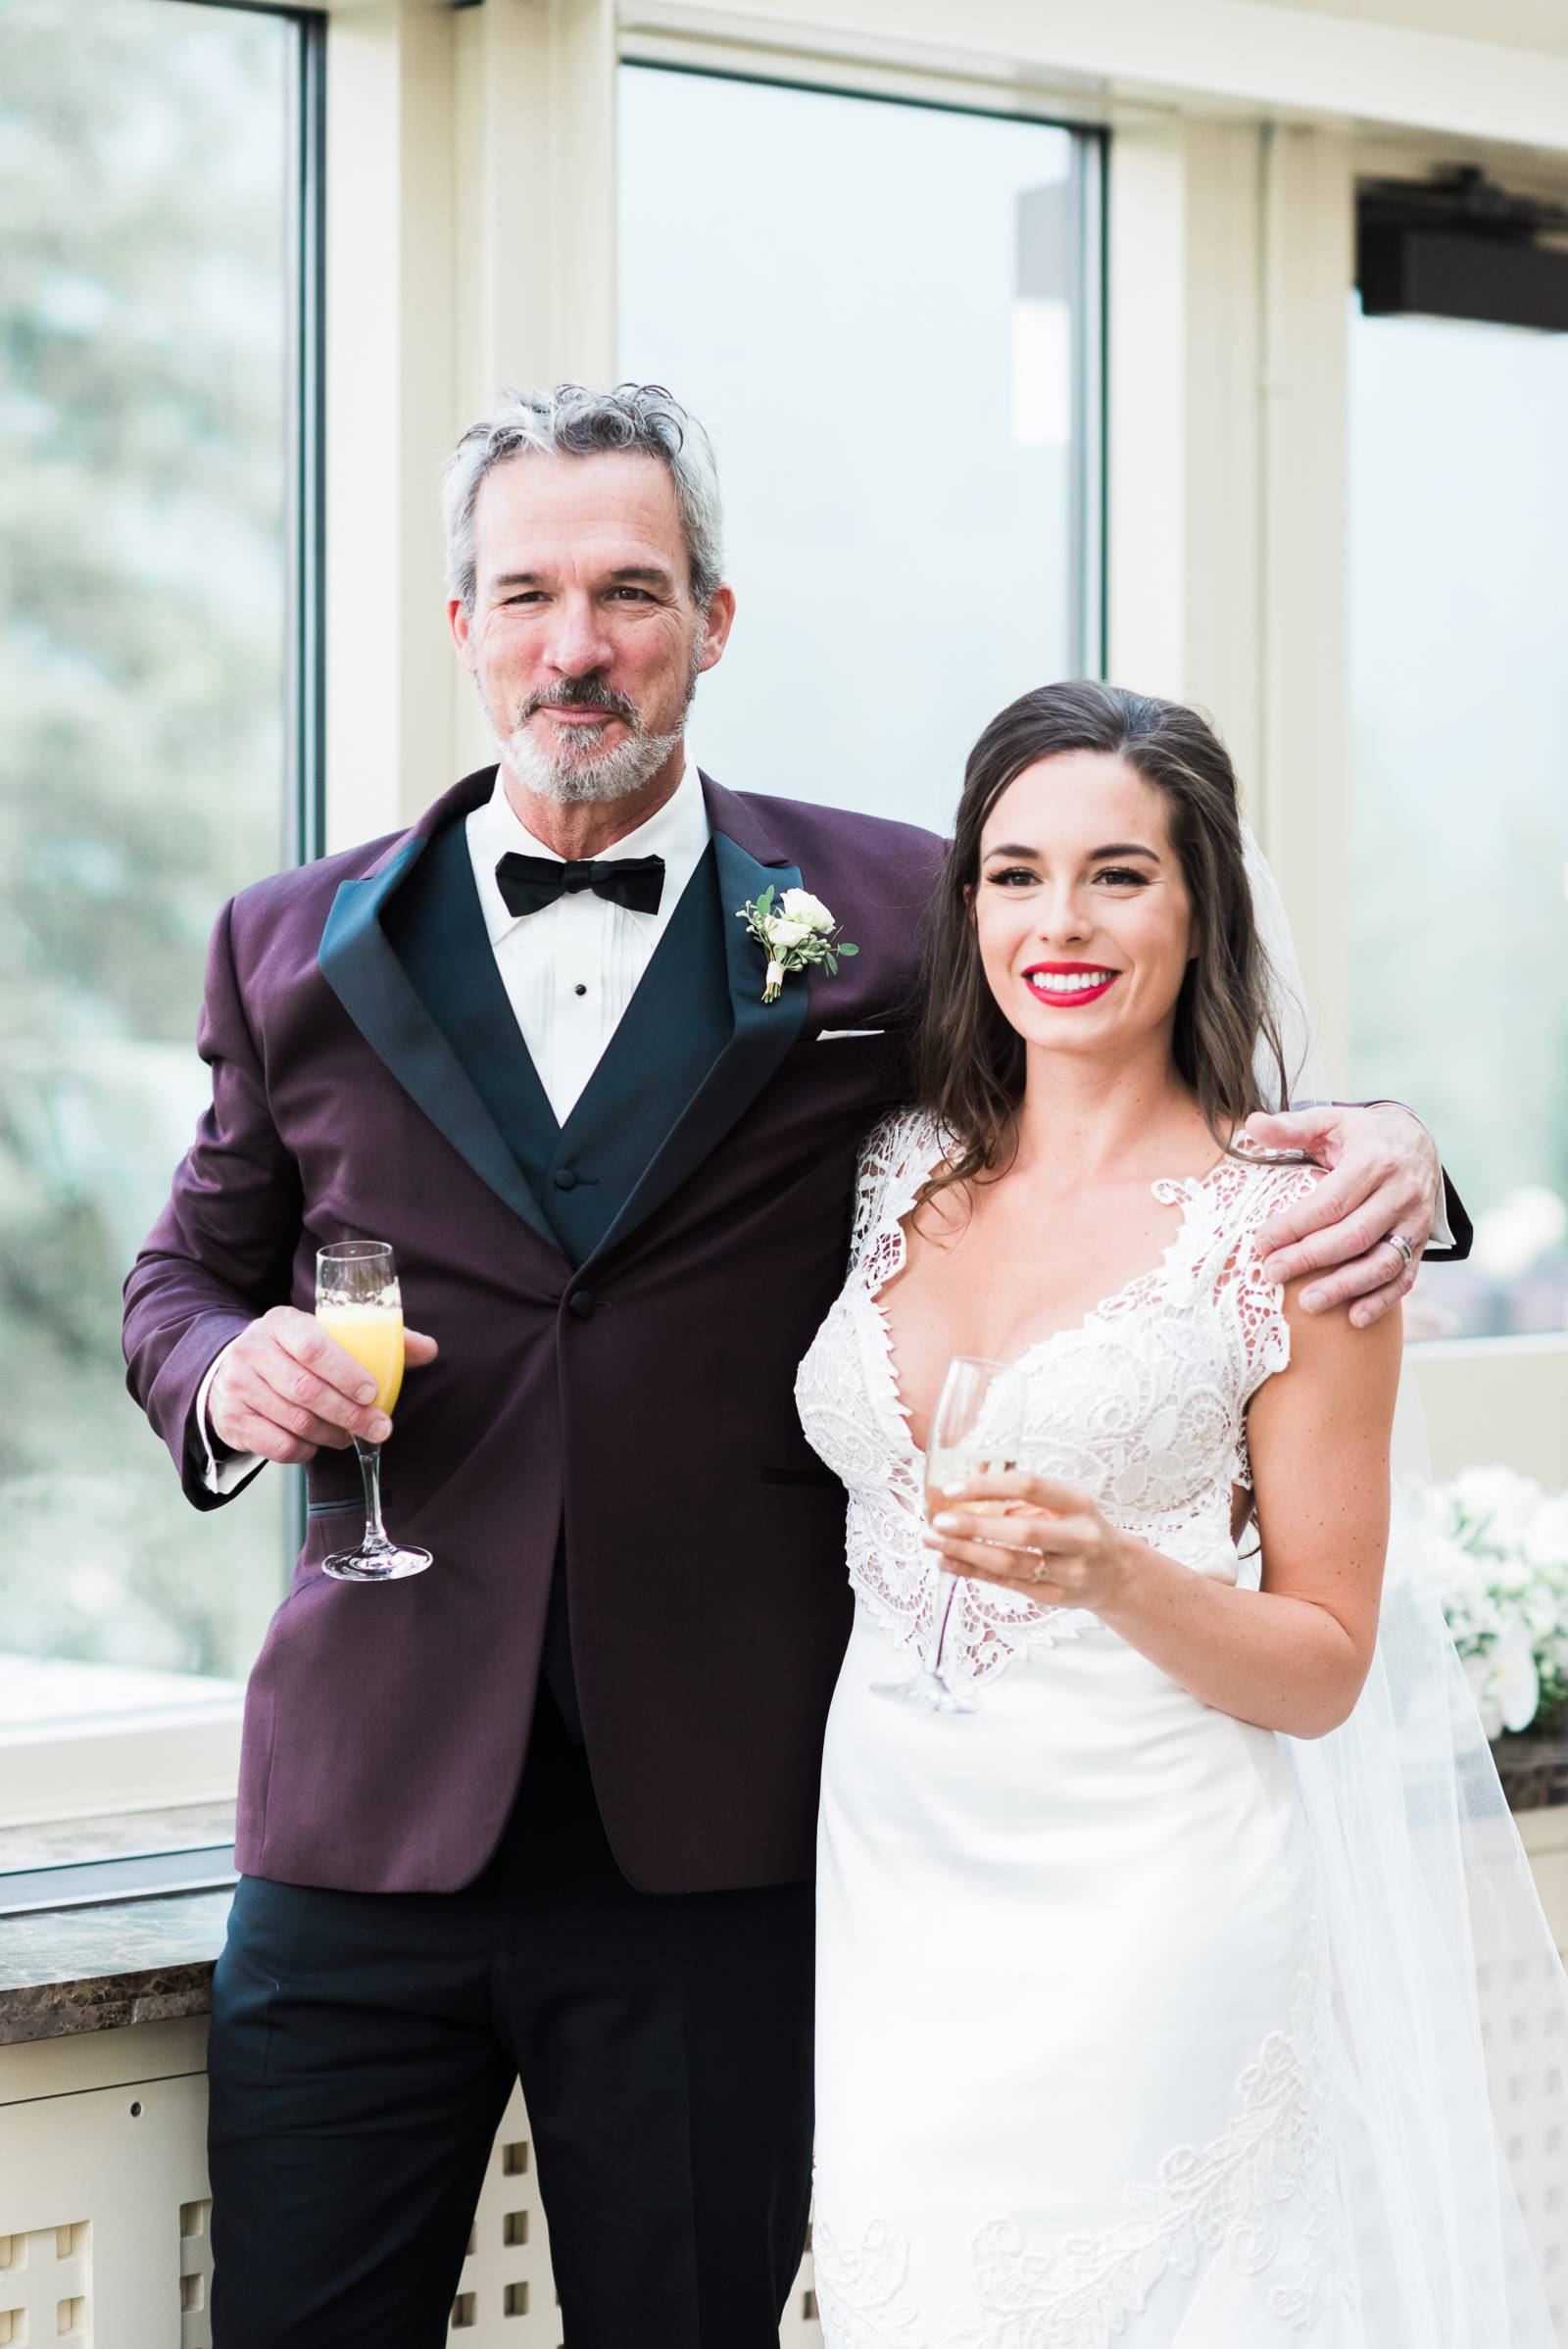 The father of the bride and his daughter pose for a toast and a photo during the wedding reception a